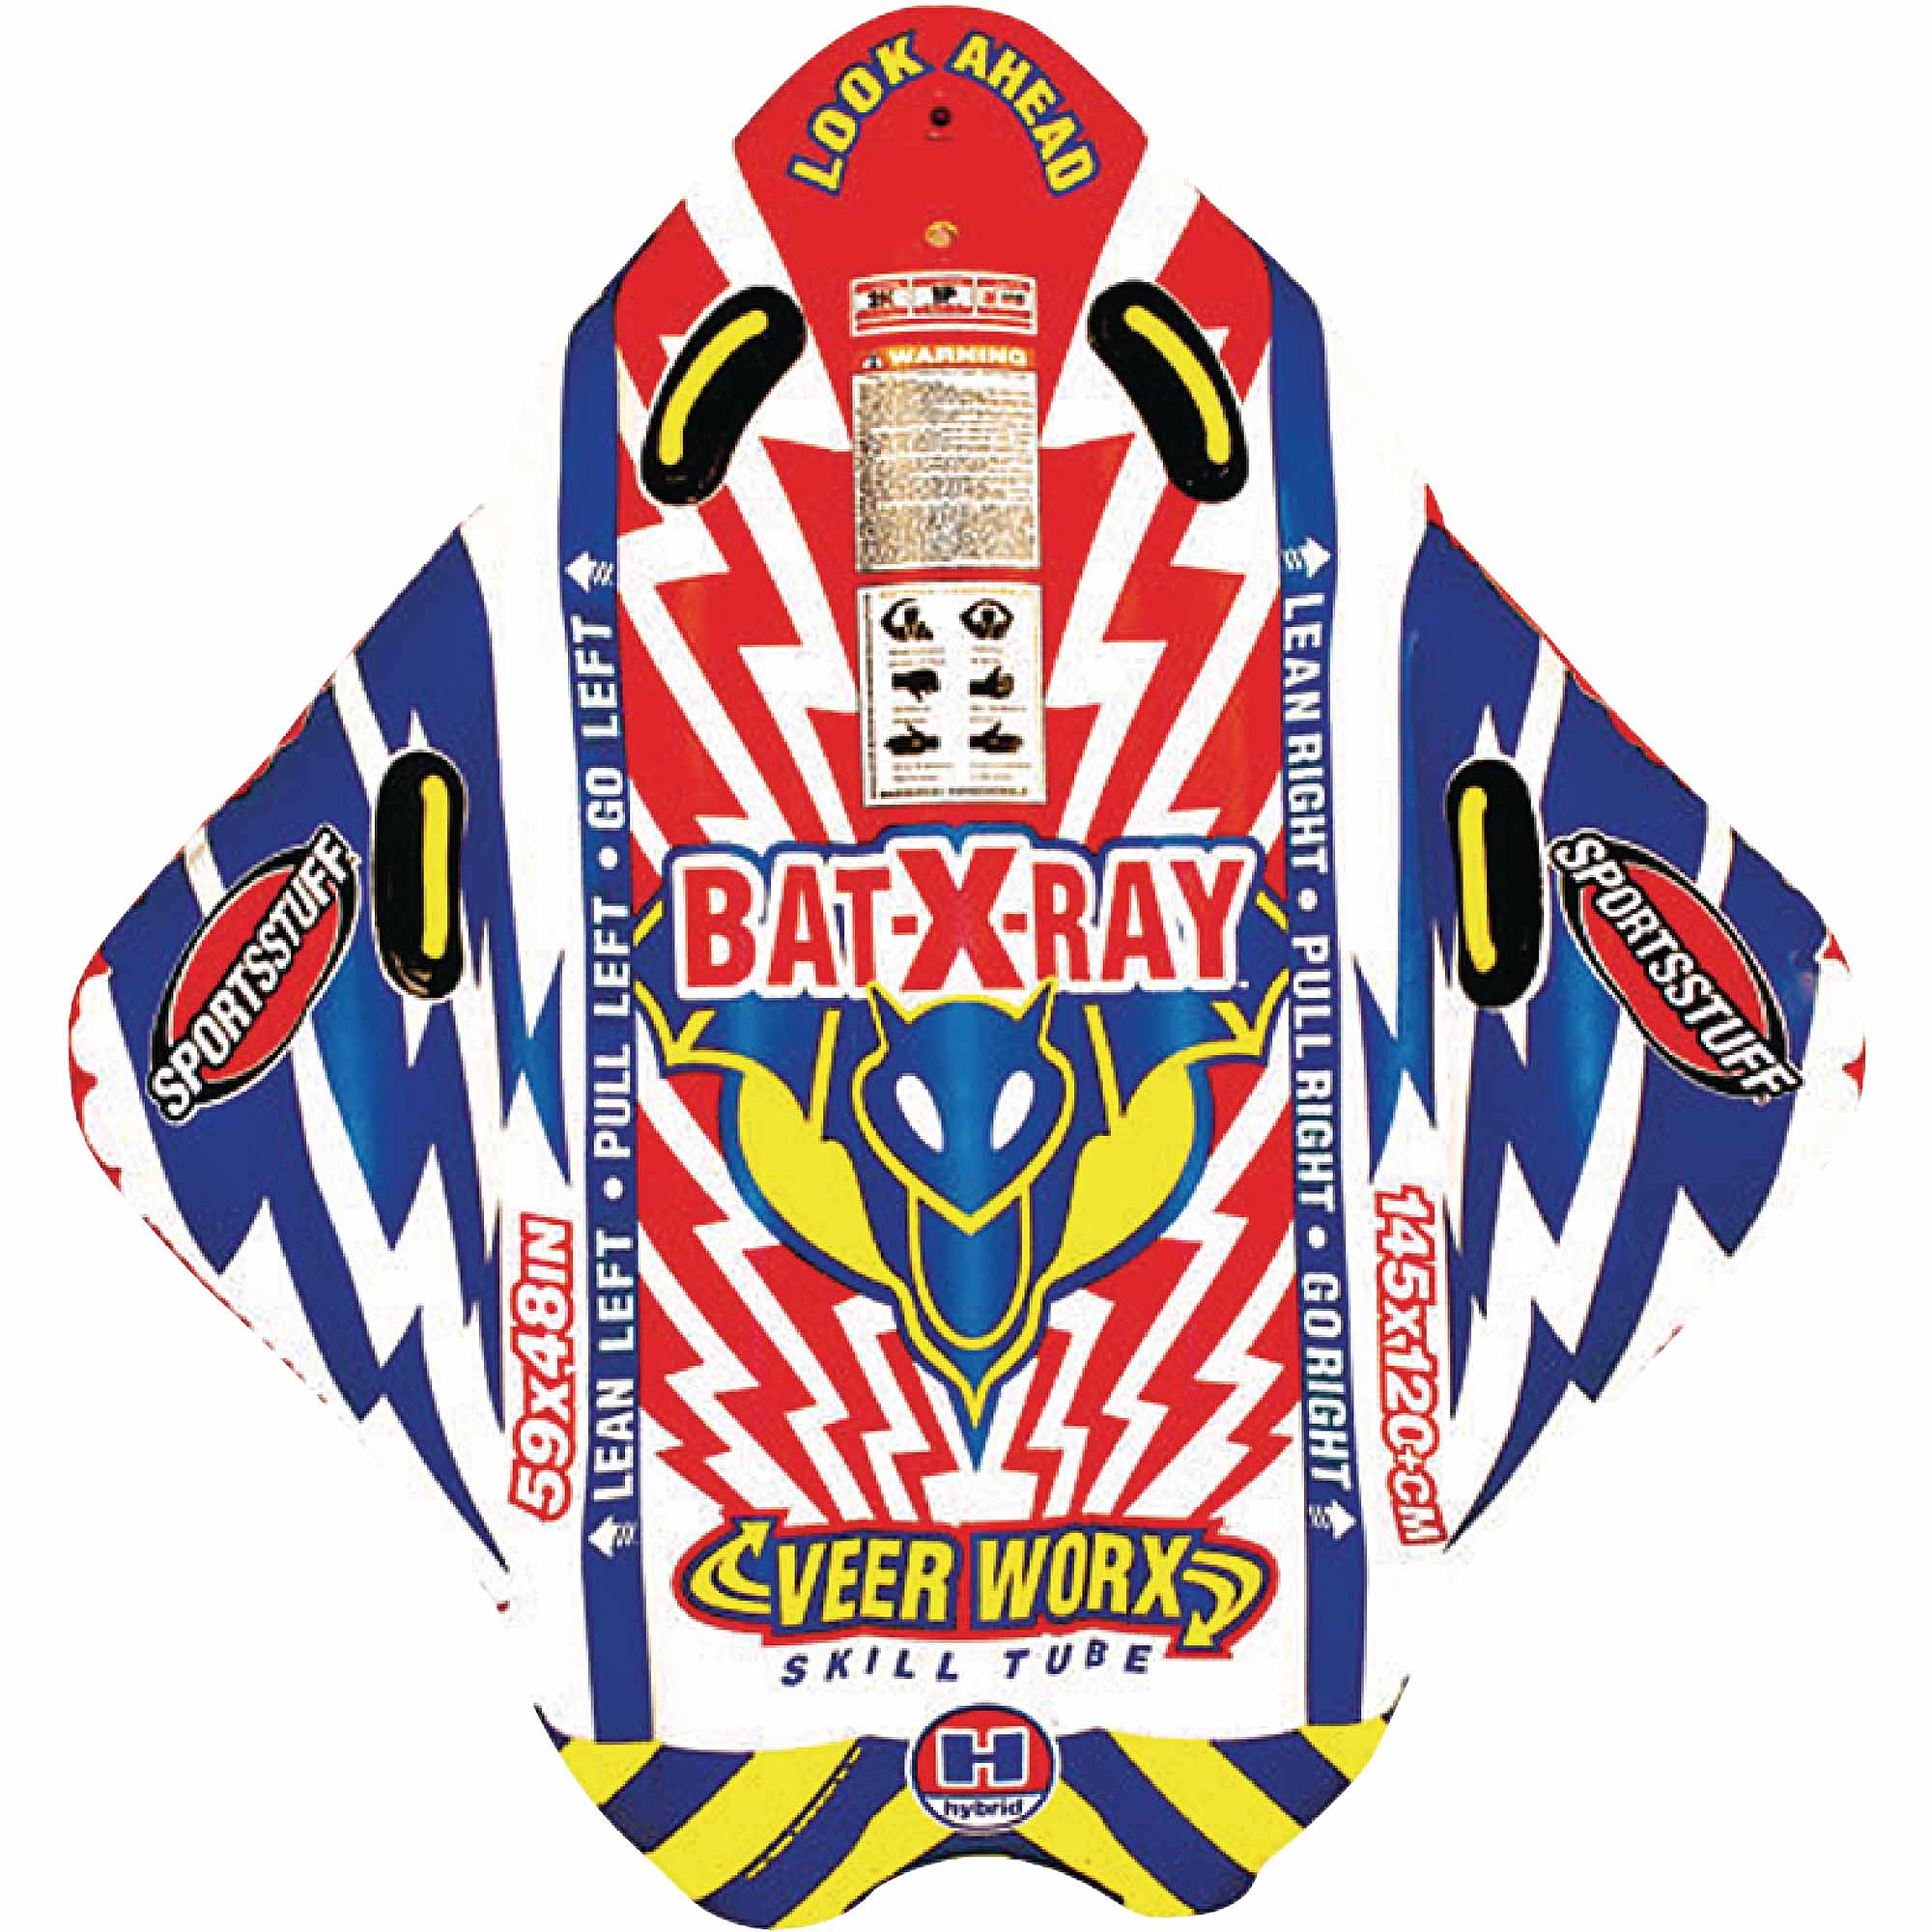 Sportsstuff Bat-X-Ray Towable Single Rider Tube